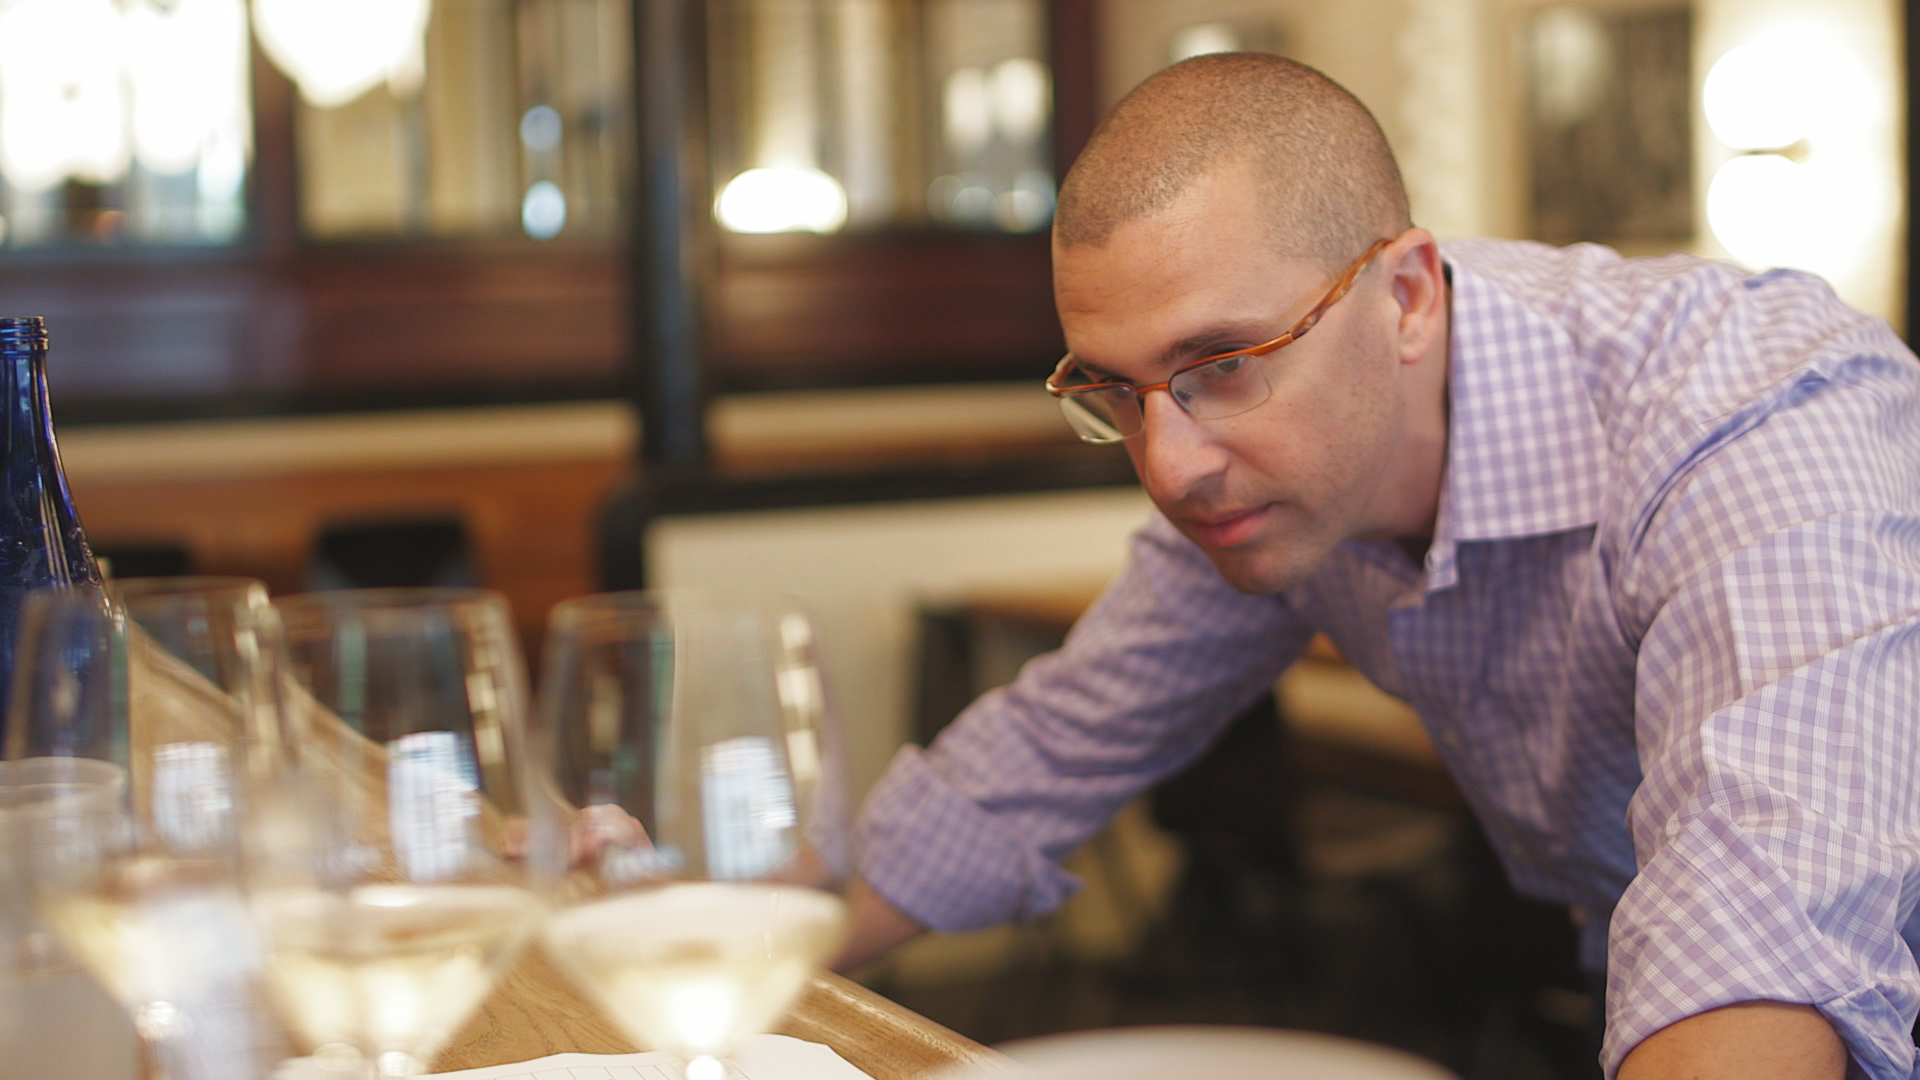 Josh Nadel, wine sommelier from Uncorked